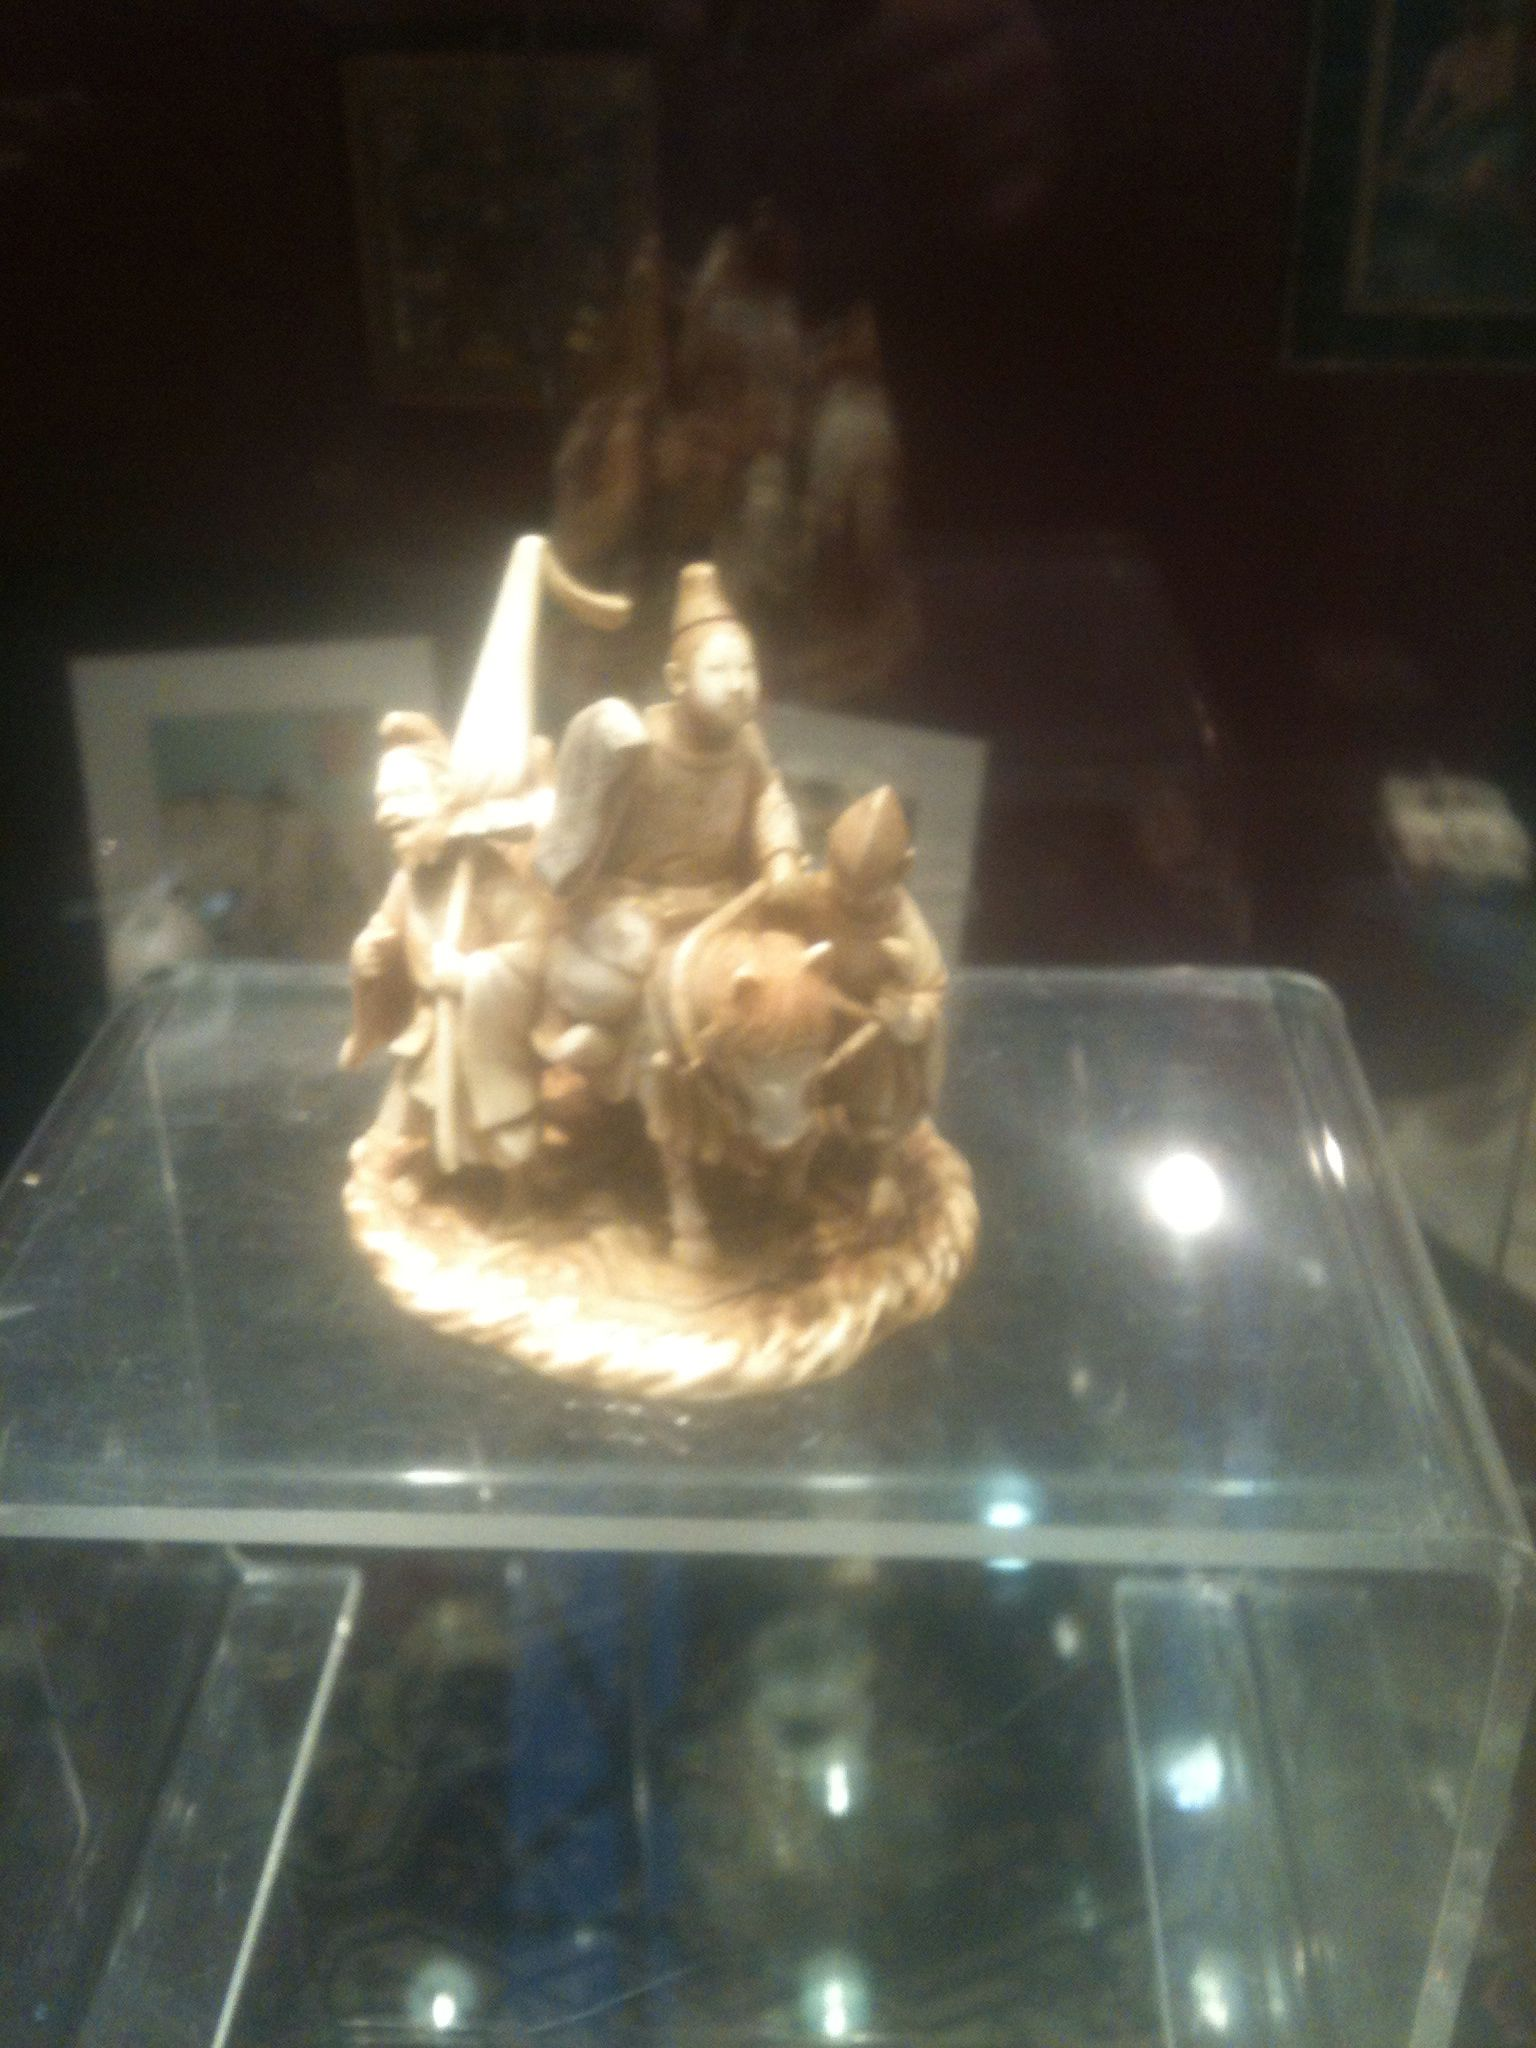 Top quality japanese ivory carving group - red seal - meji period - call Danilo 0039 335 6815268